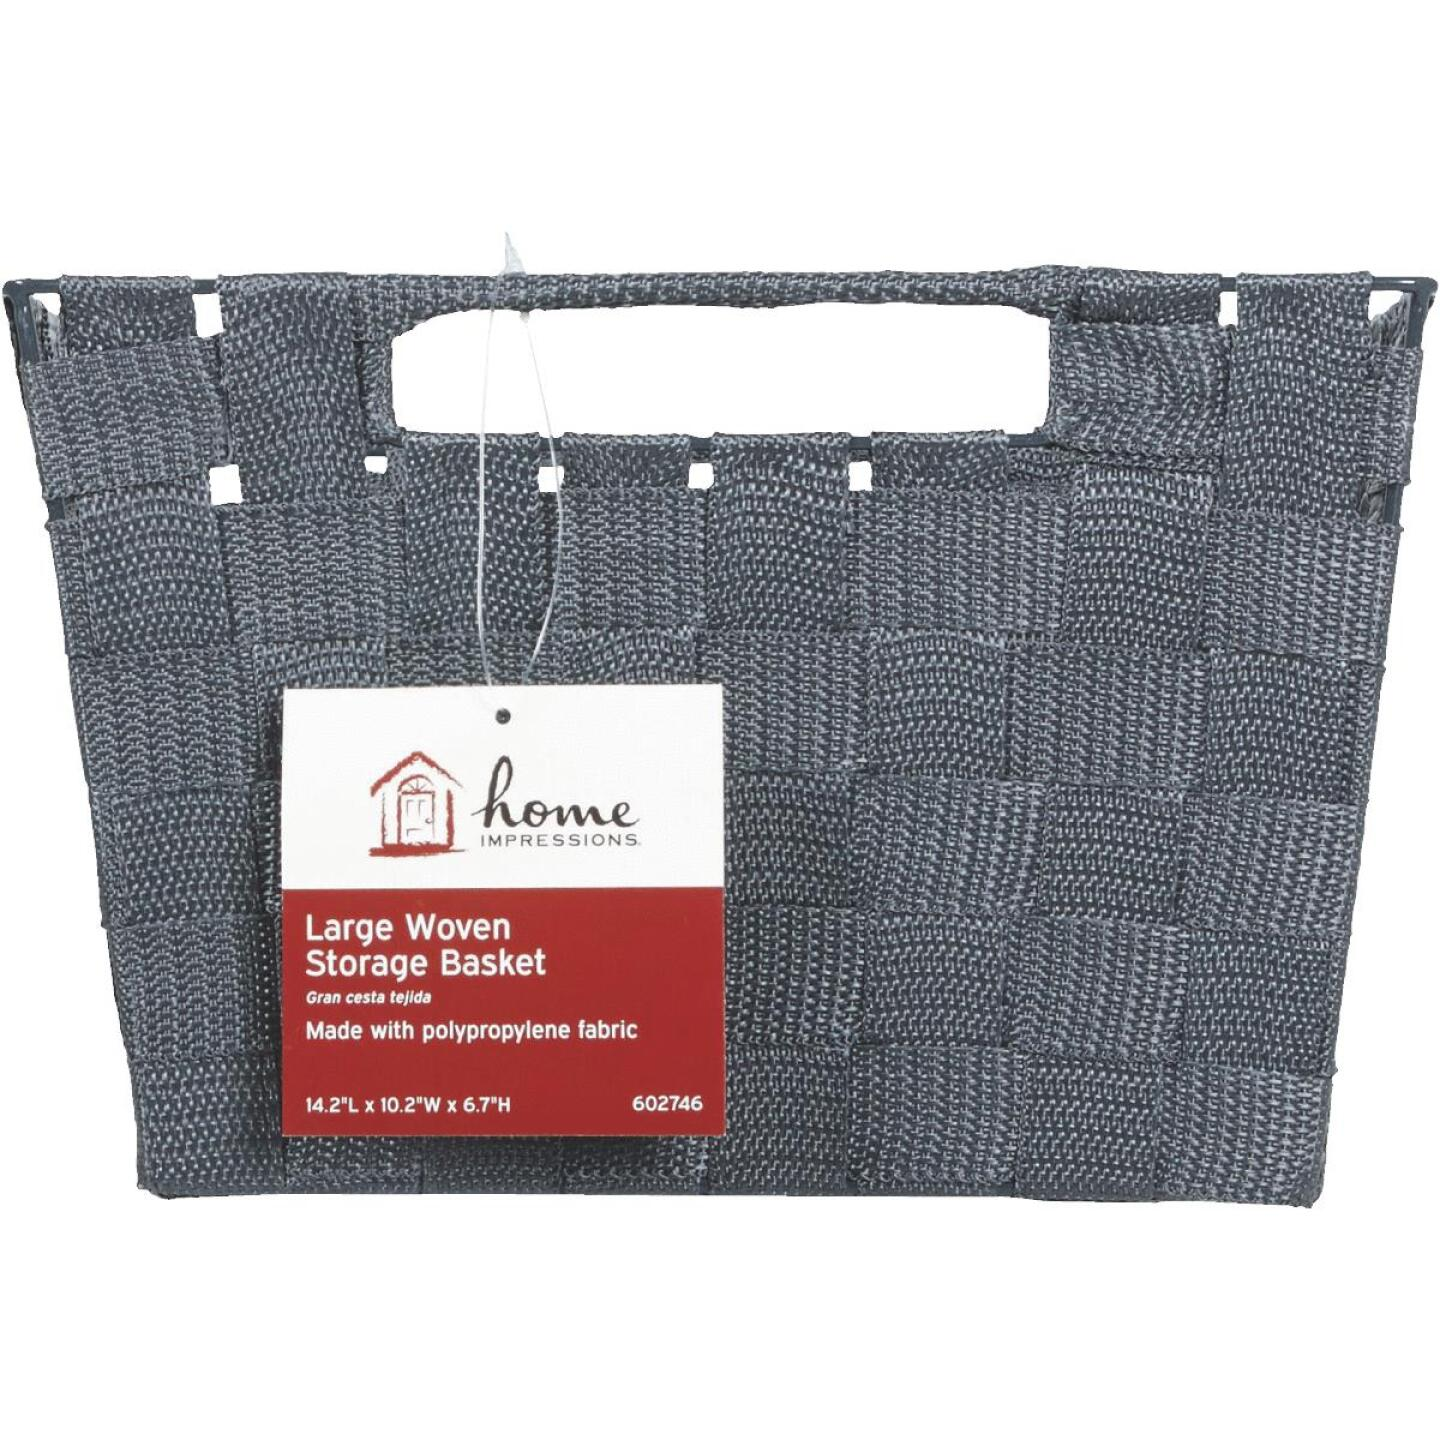 Home Impressions 10 In. W. x 6.75 In. H. x 14 In. L. Woven Storage Basket with Handles, Gray Image 2